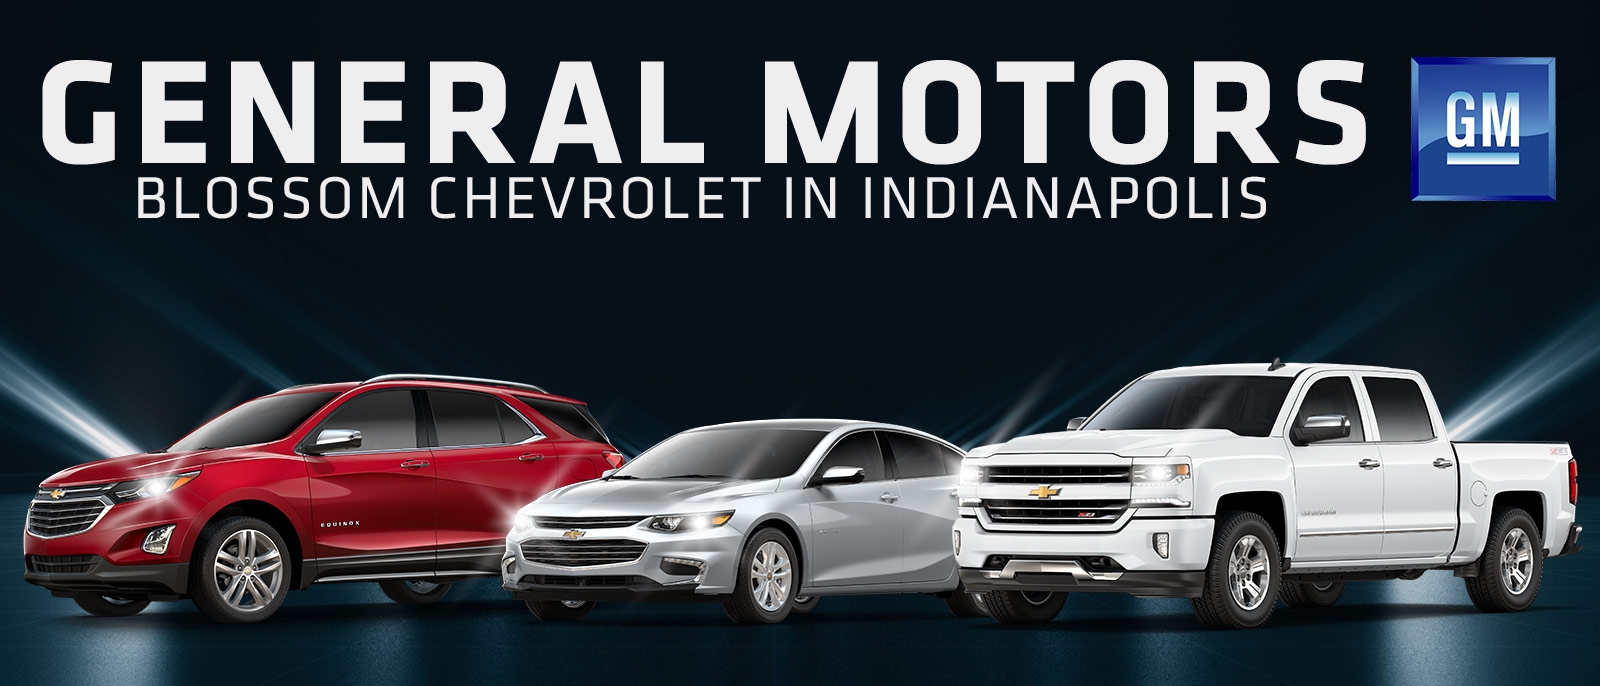 2019 Malibu >> What is General Motors? | Blossom Chevrolet in Indianapolis, IN